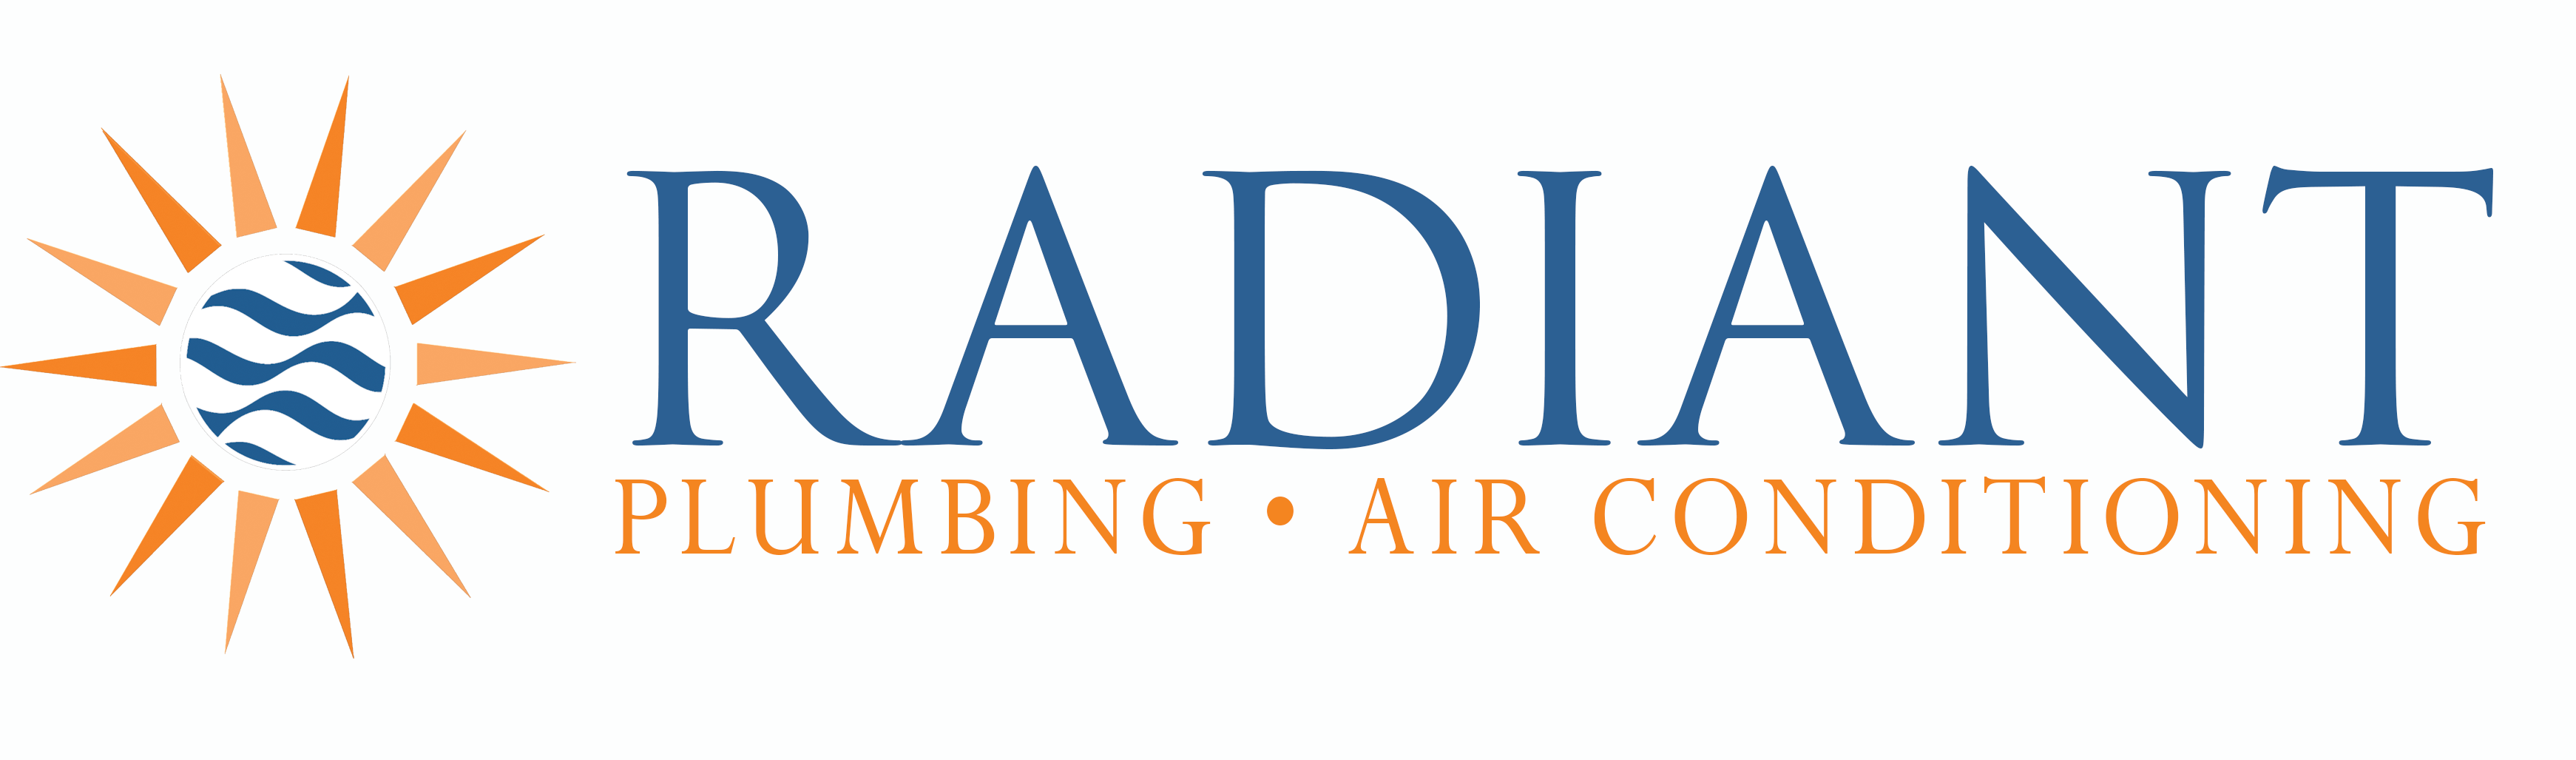 Radiant Plumbing & Air Conditioning Logo